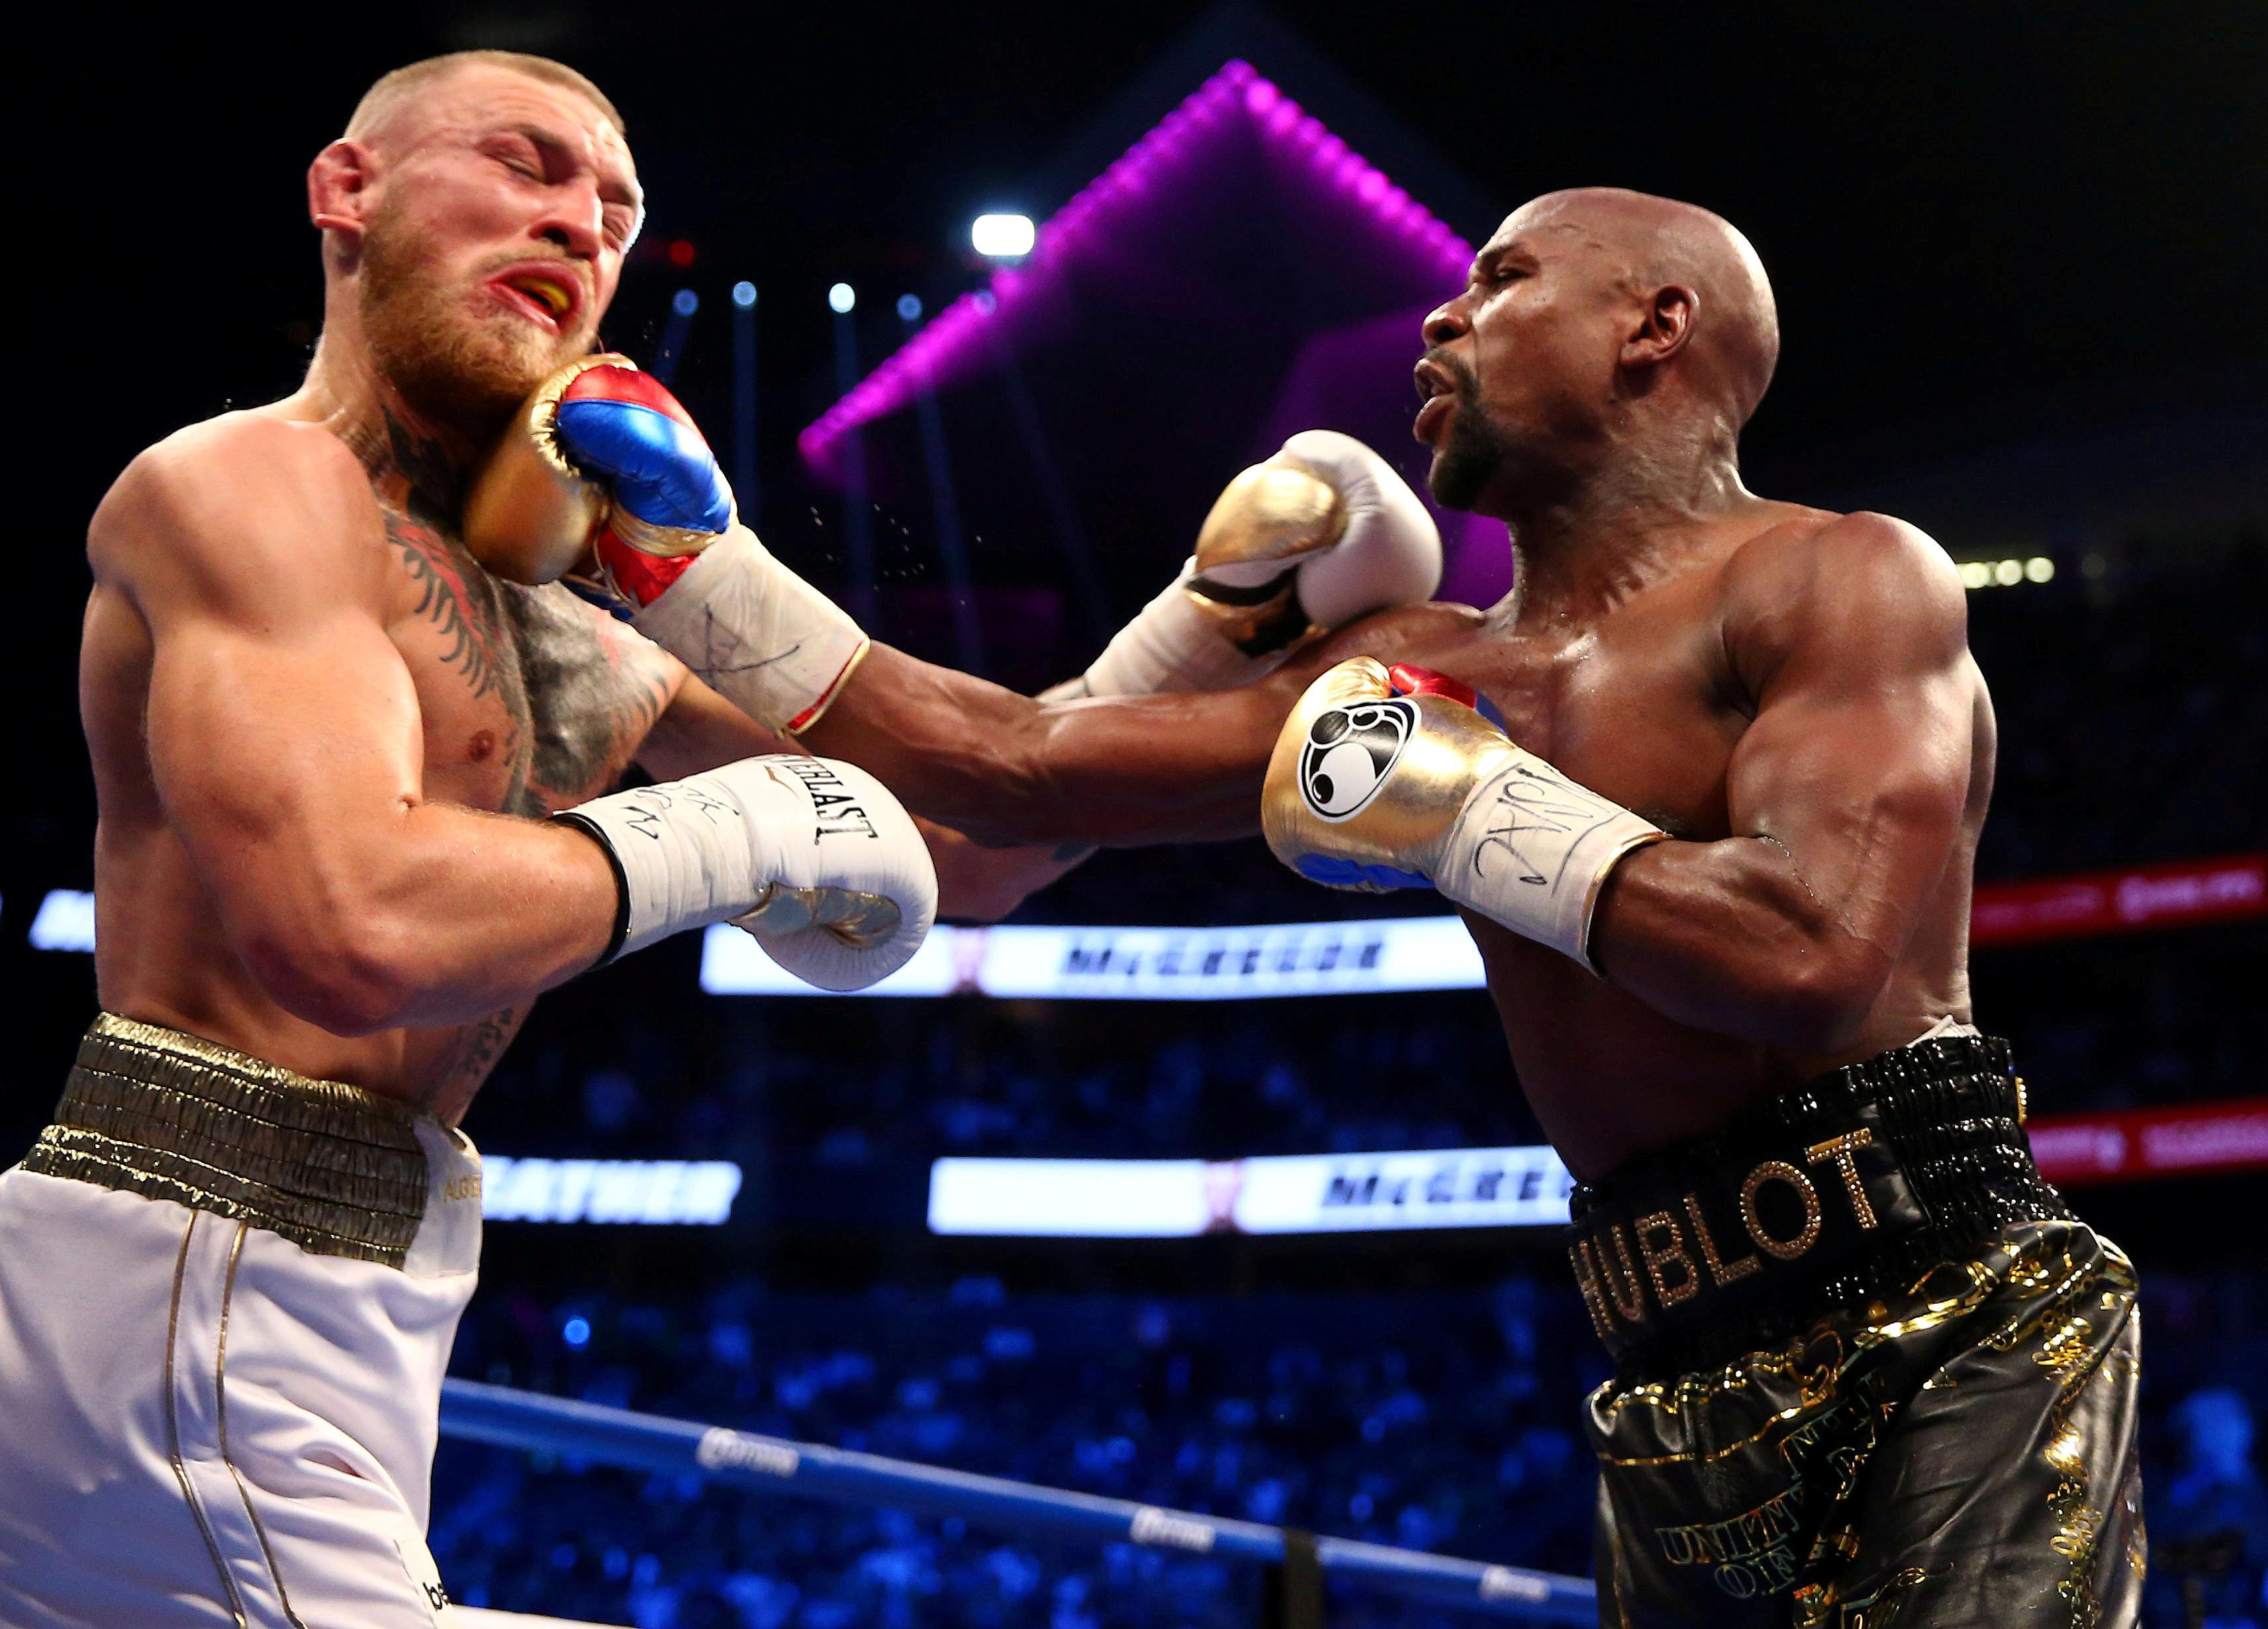 Floyd Mayweather has revealed Conor McGregor only made the Forbes list because of him